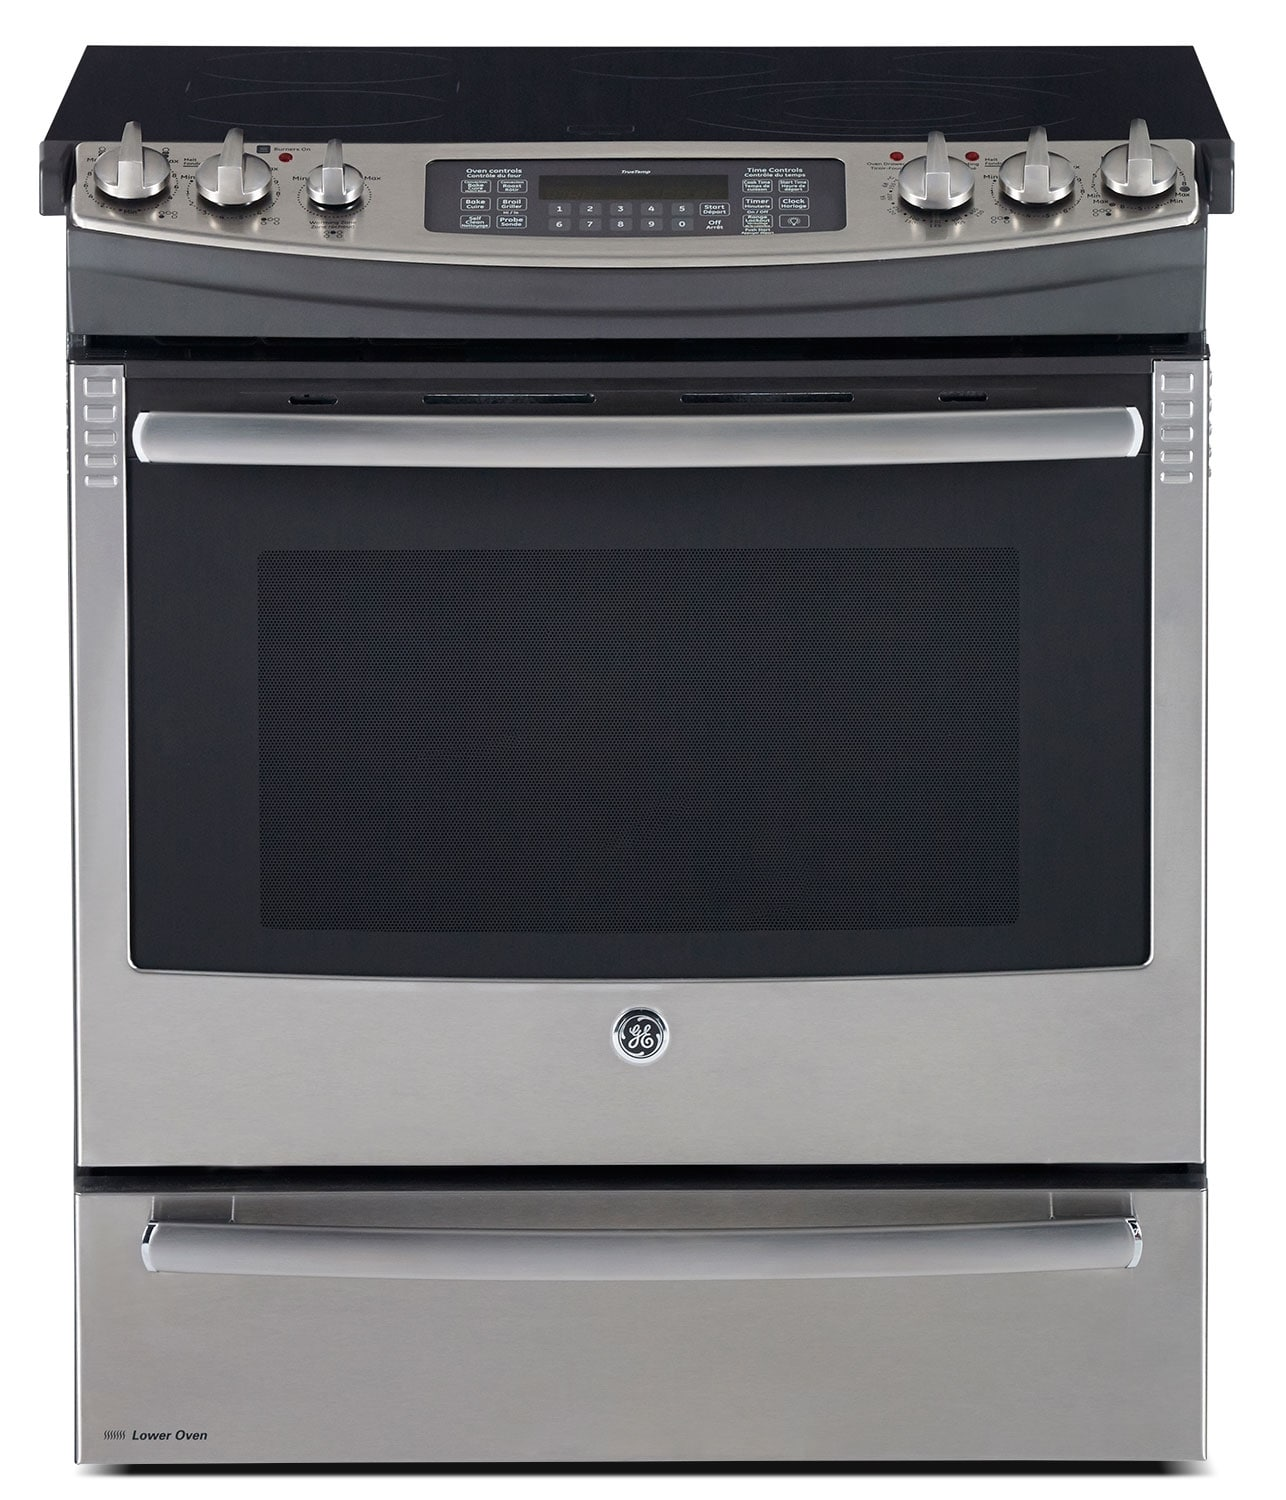 Cooking Products - GE Stainless Steel Slide-In Electric Convection Range (6.6 Cu. Ft.) - PCS940SFSS